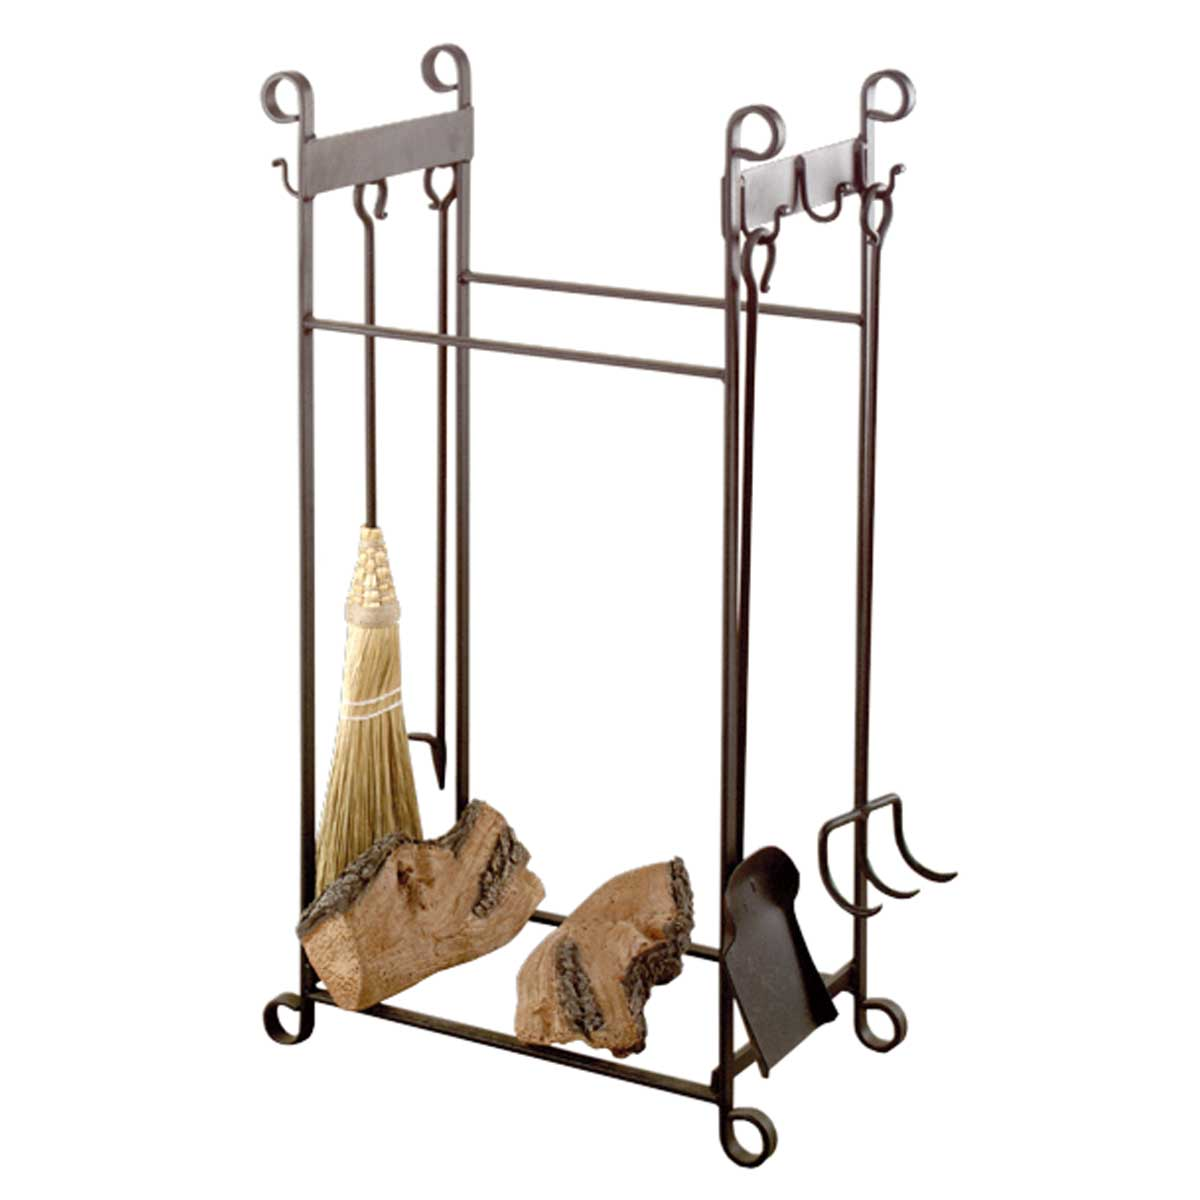 Wrought Iron combination fireplace tool set and log stand. Measures 36 inches H x 20-1/4 W x 12 inches in depth.	Hand-forged from rugged wrought iron	Crafted for years of enduring ...